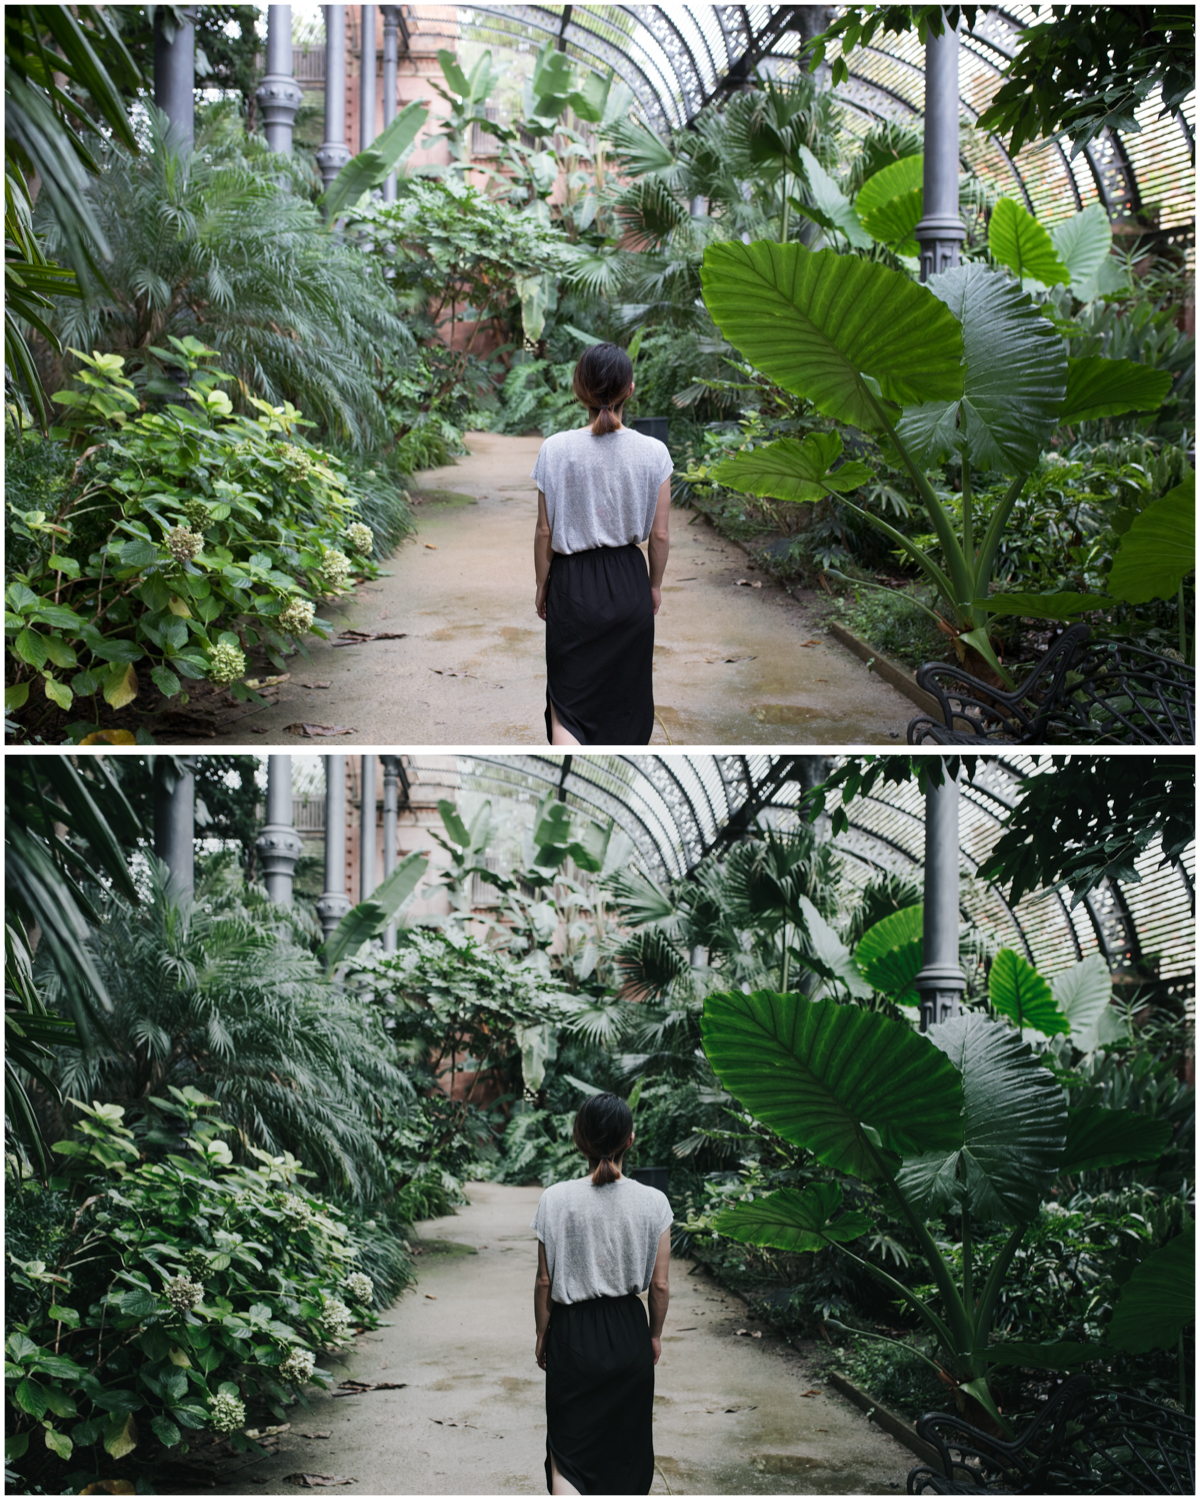 Greenhouse and foliage. Before (top), and with Film Luxe 3 preset applied (bottom)